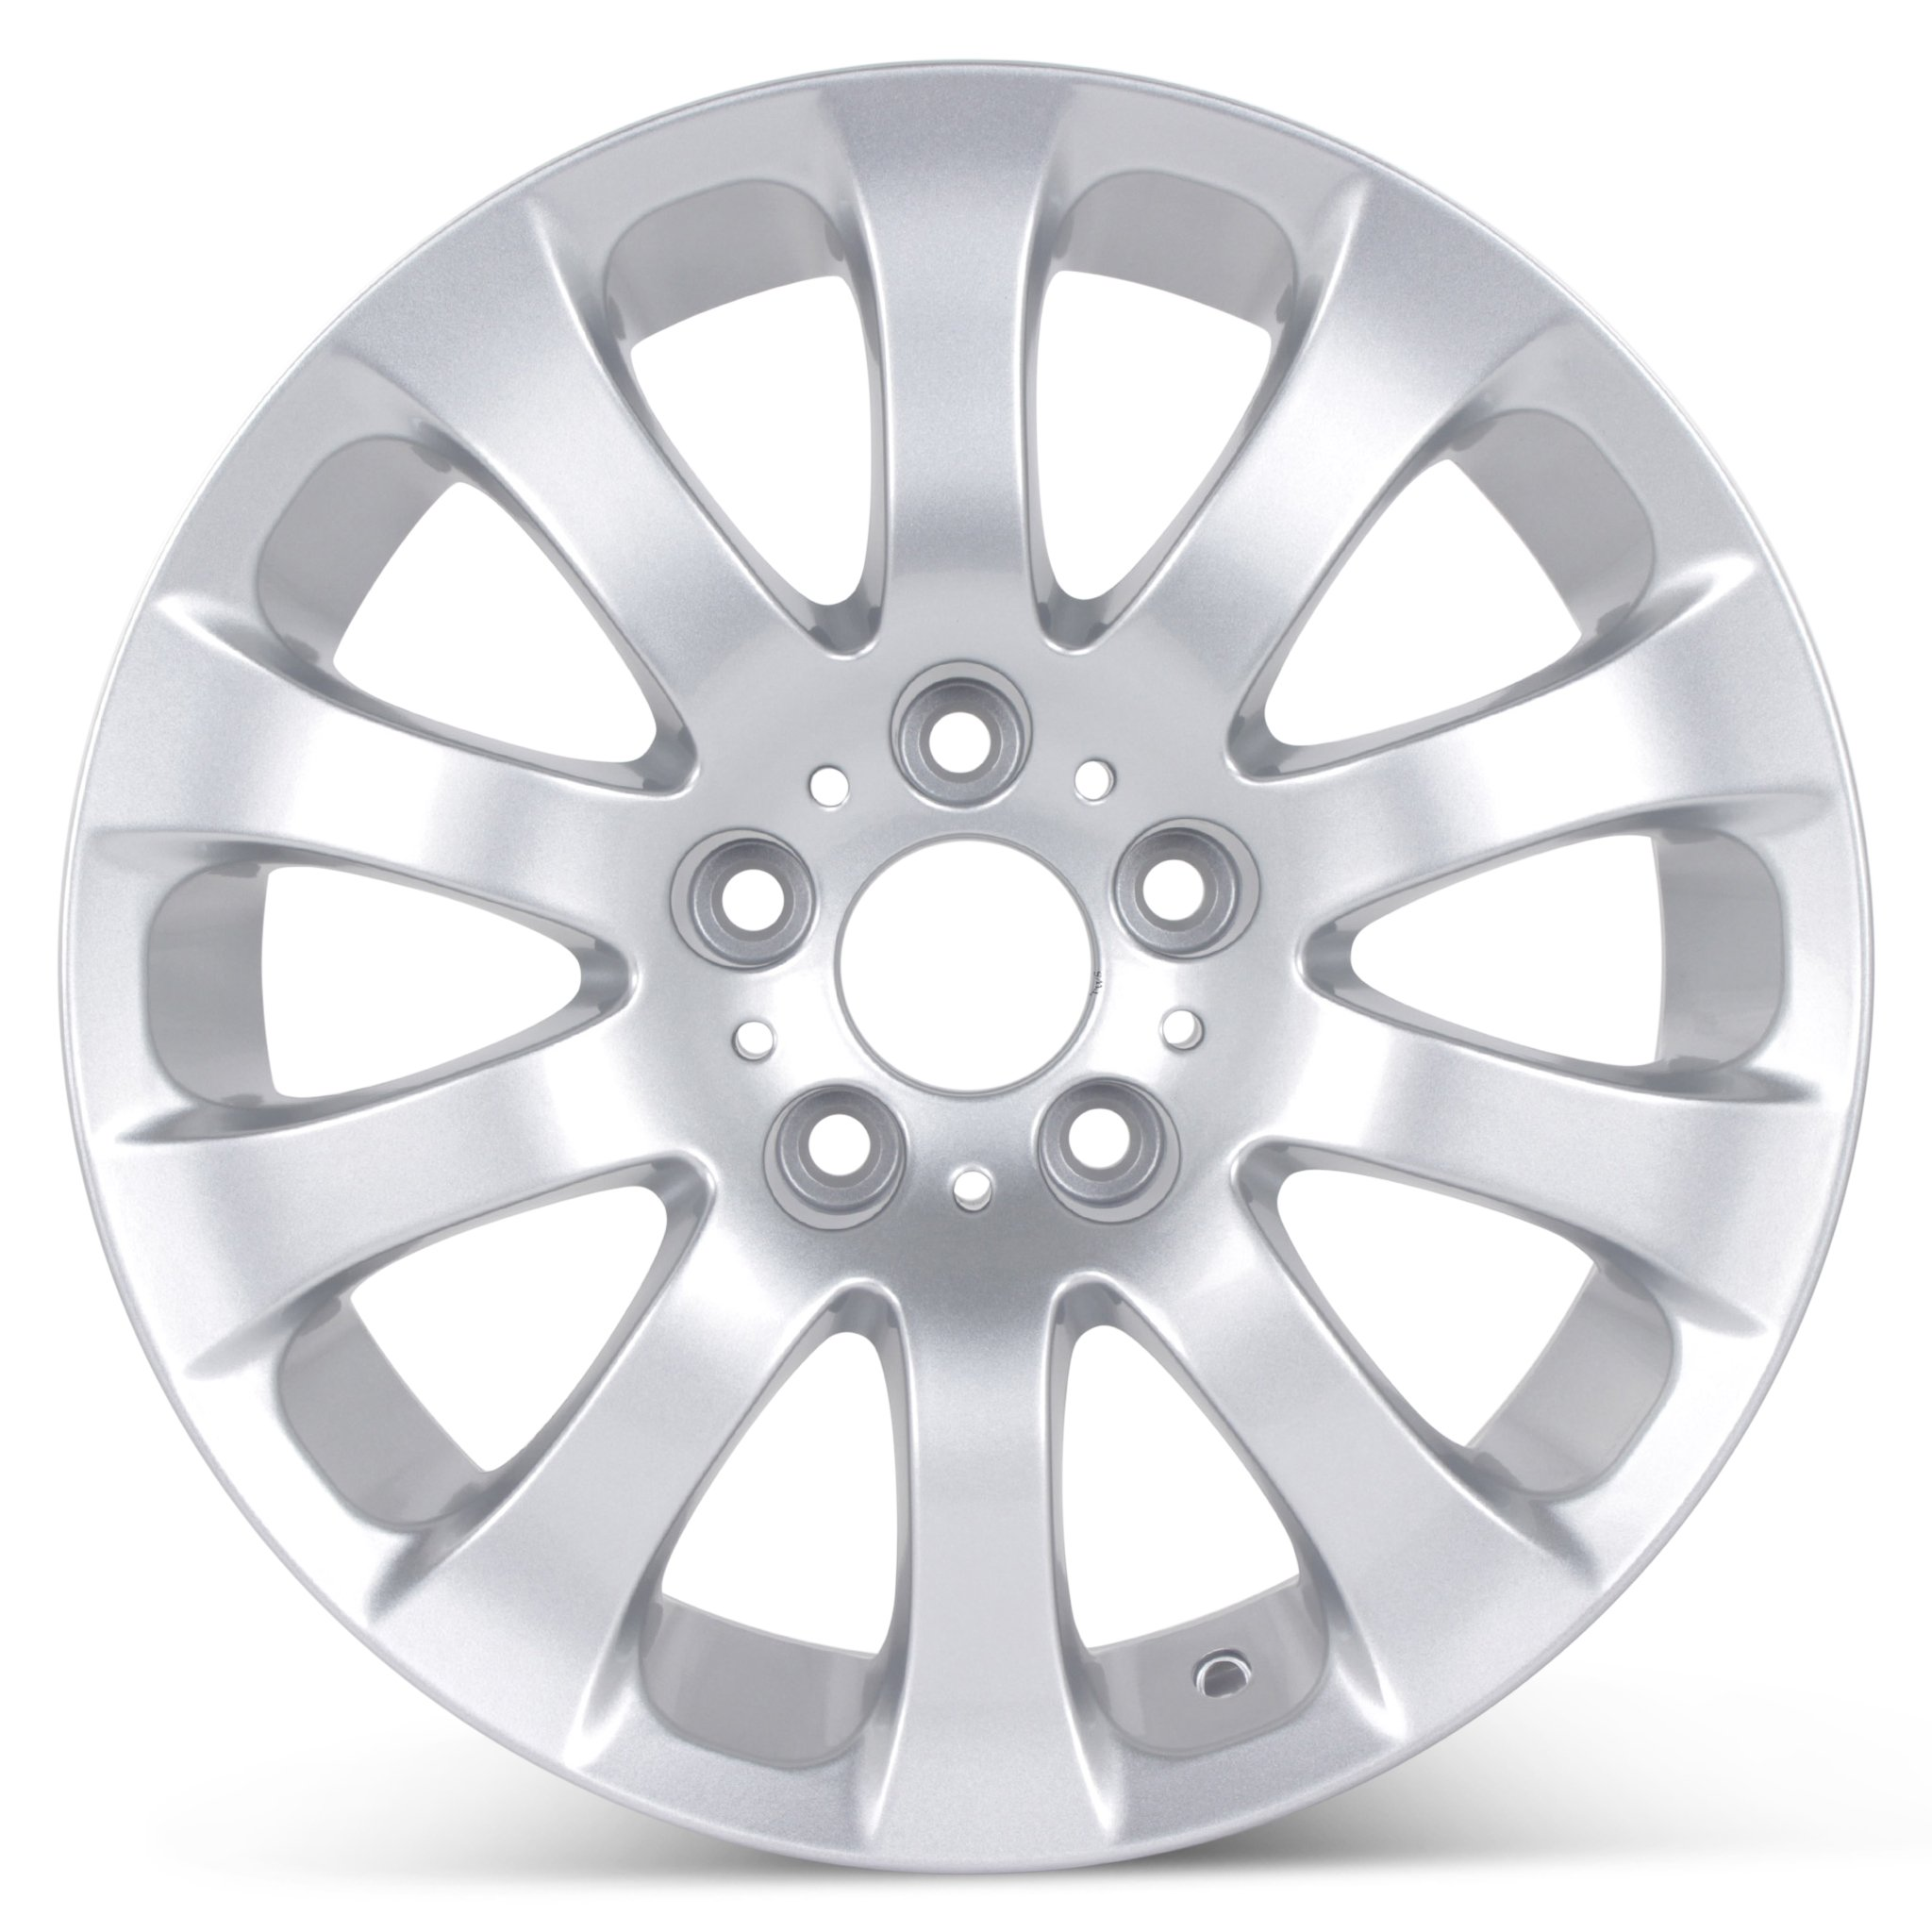 Brand New 17'' x 8'' Replacement Wheel for BMW 3 Series 2006-2013 Rim 59582 by Wheelership (Image #2)